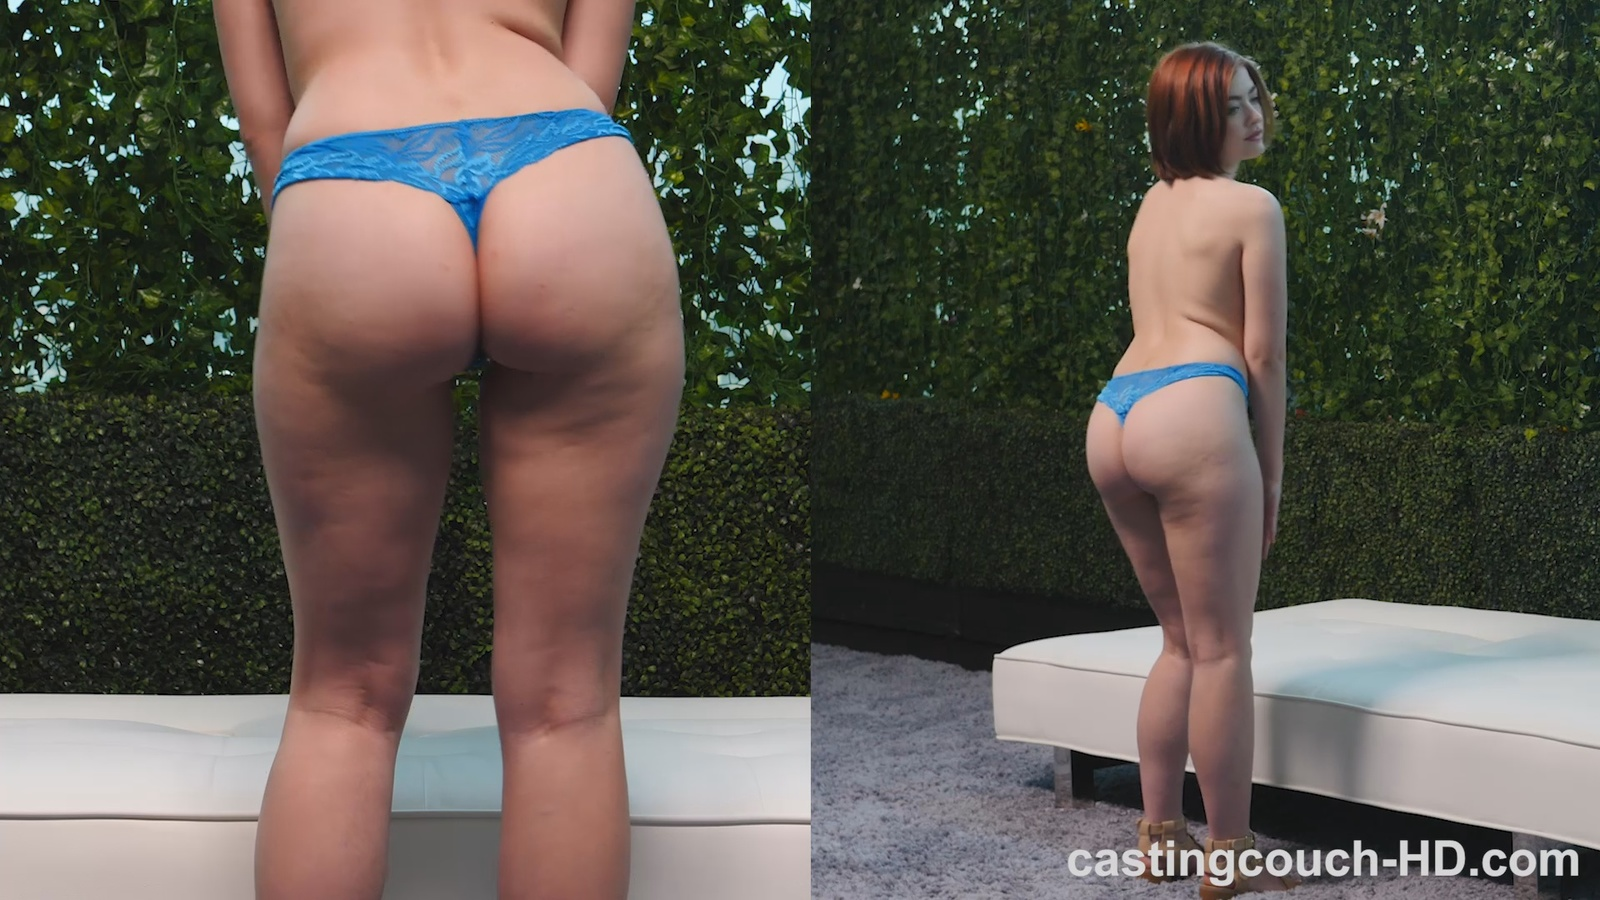 Casting couch hd jessie-3588